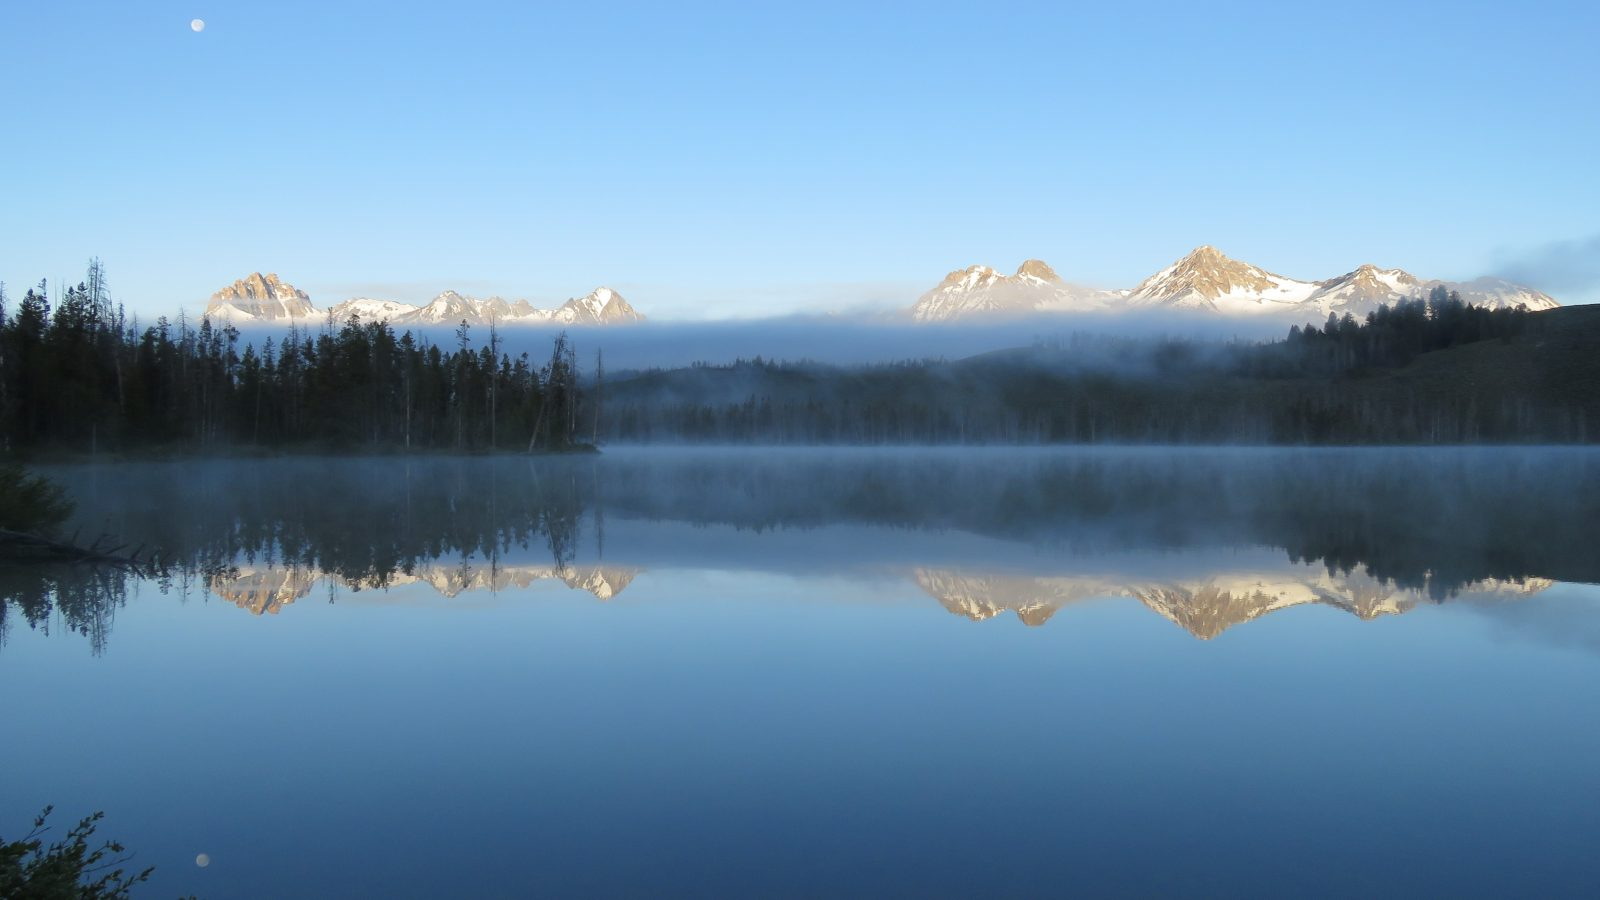 Moon, Fog, and Mountain Reflections